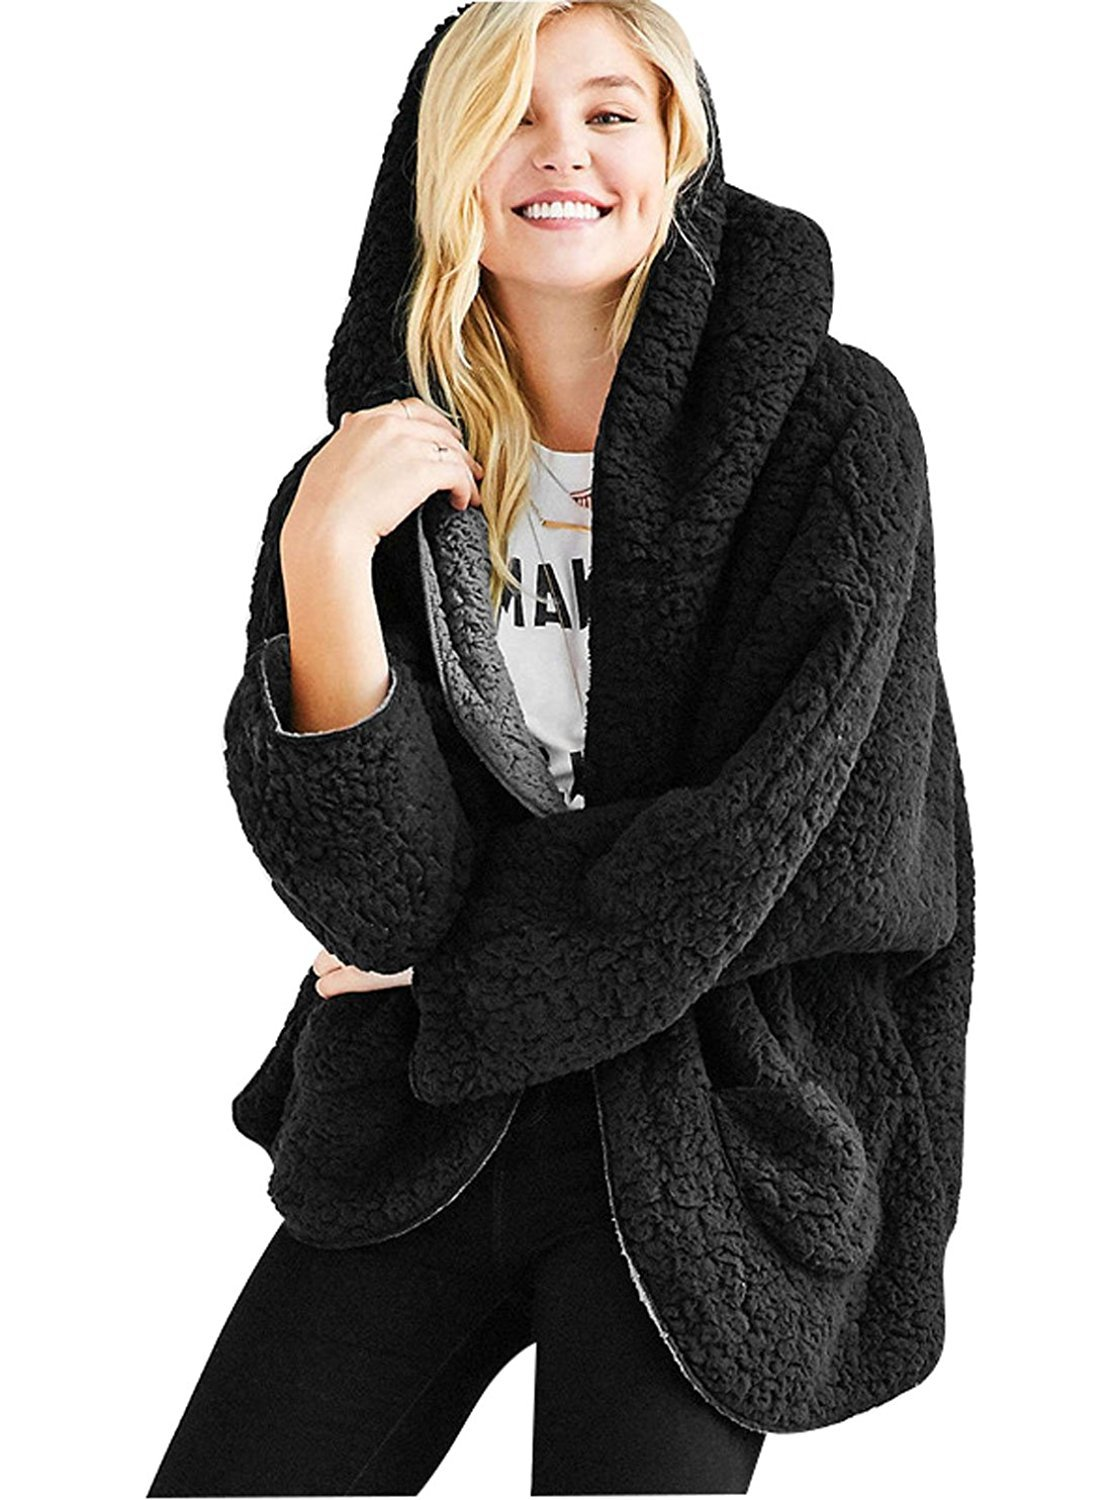 CHOiES record your inspired fashion Choies Women's Black Reversible Faux Fur Winter Cardigan Hooded Coat S